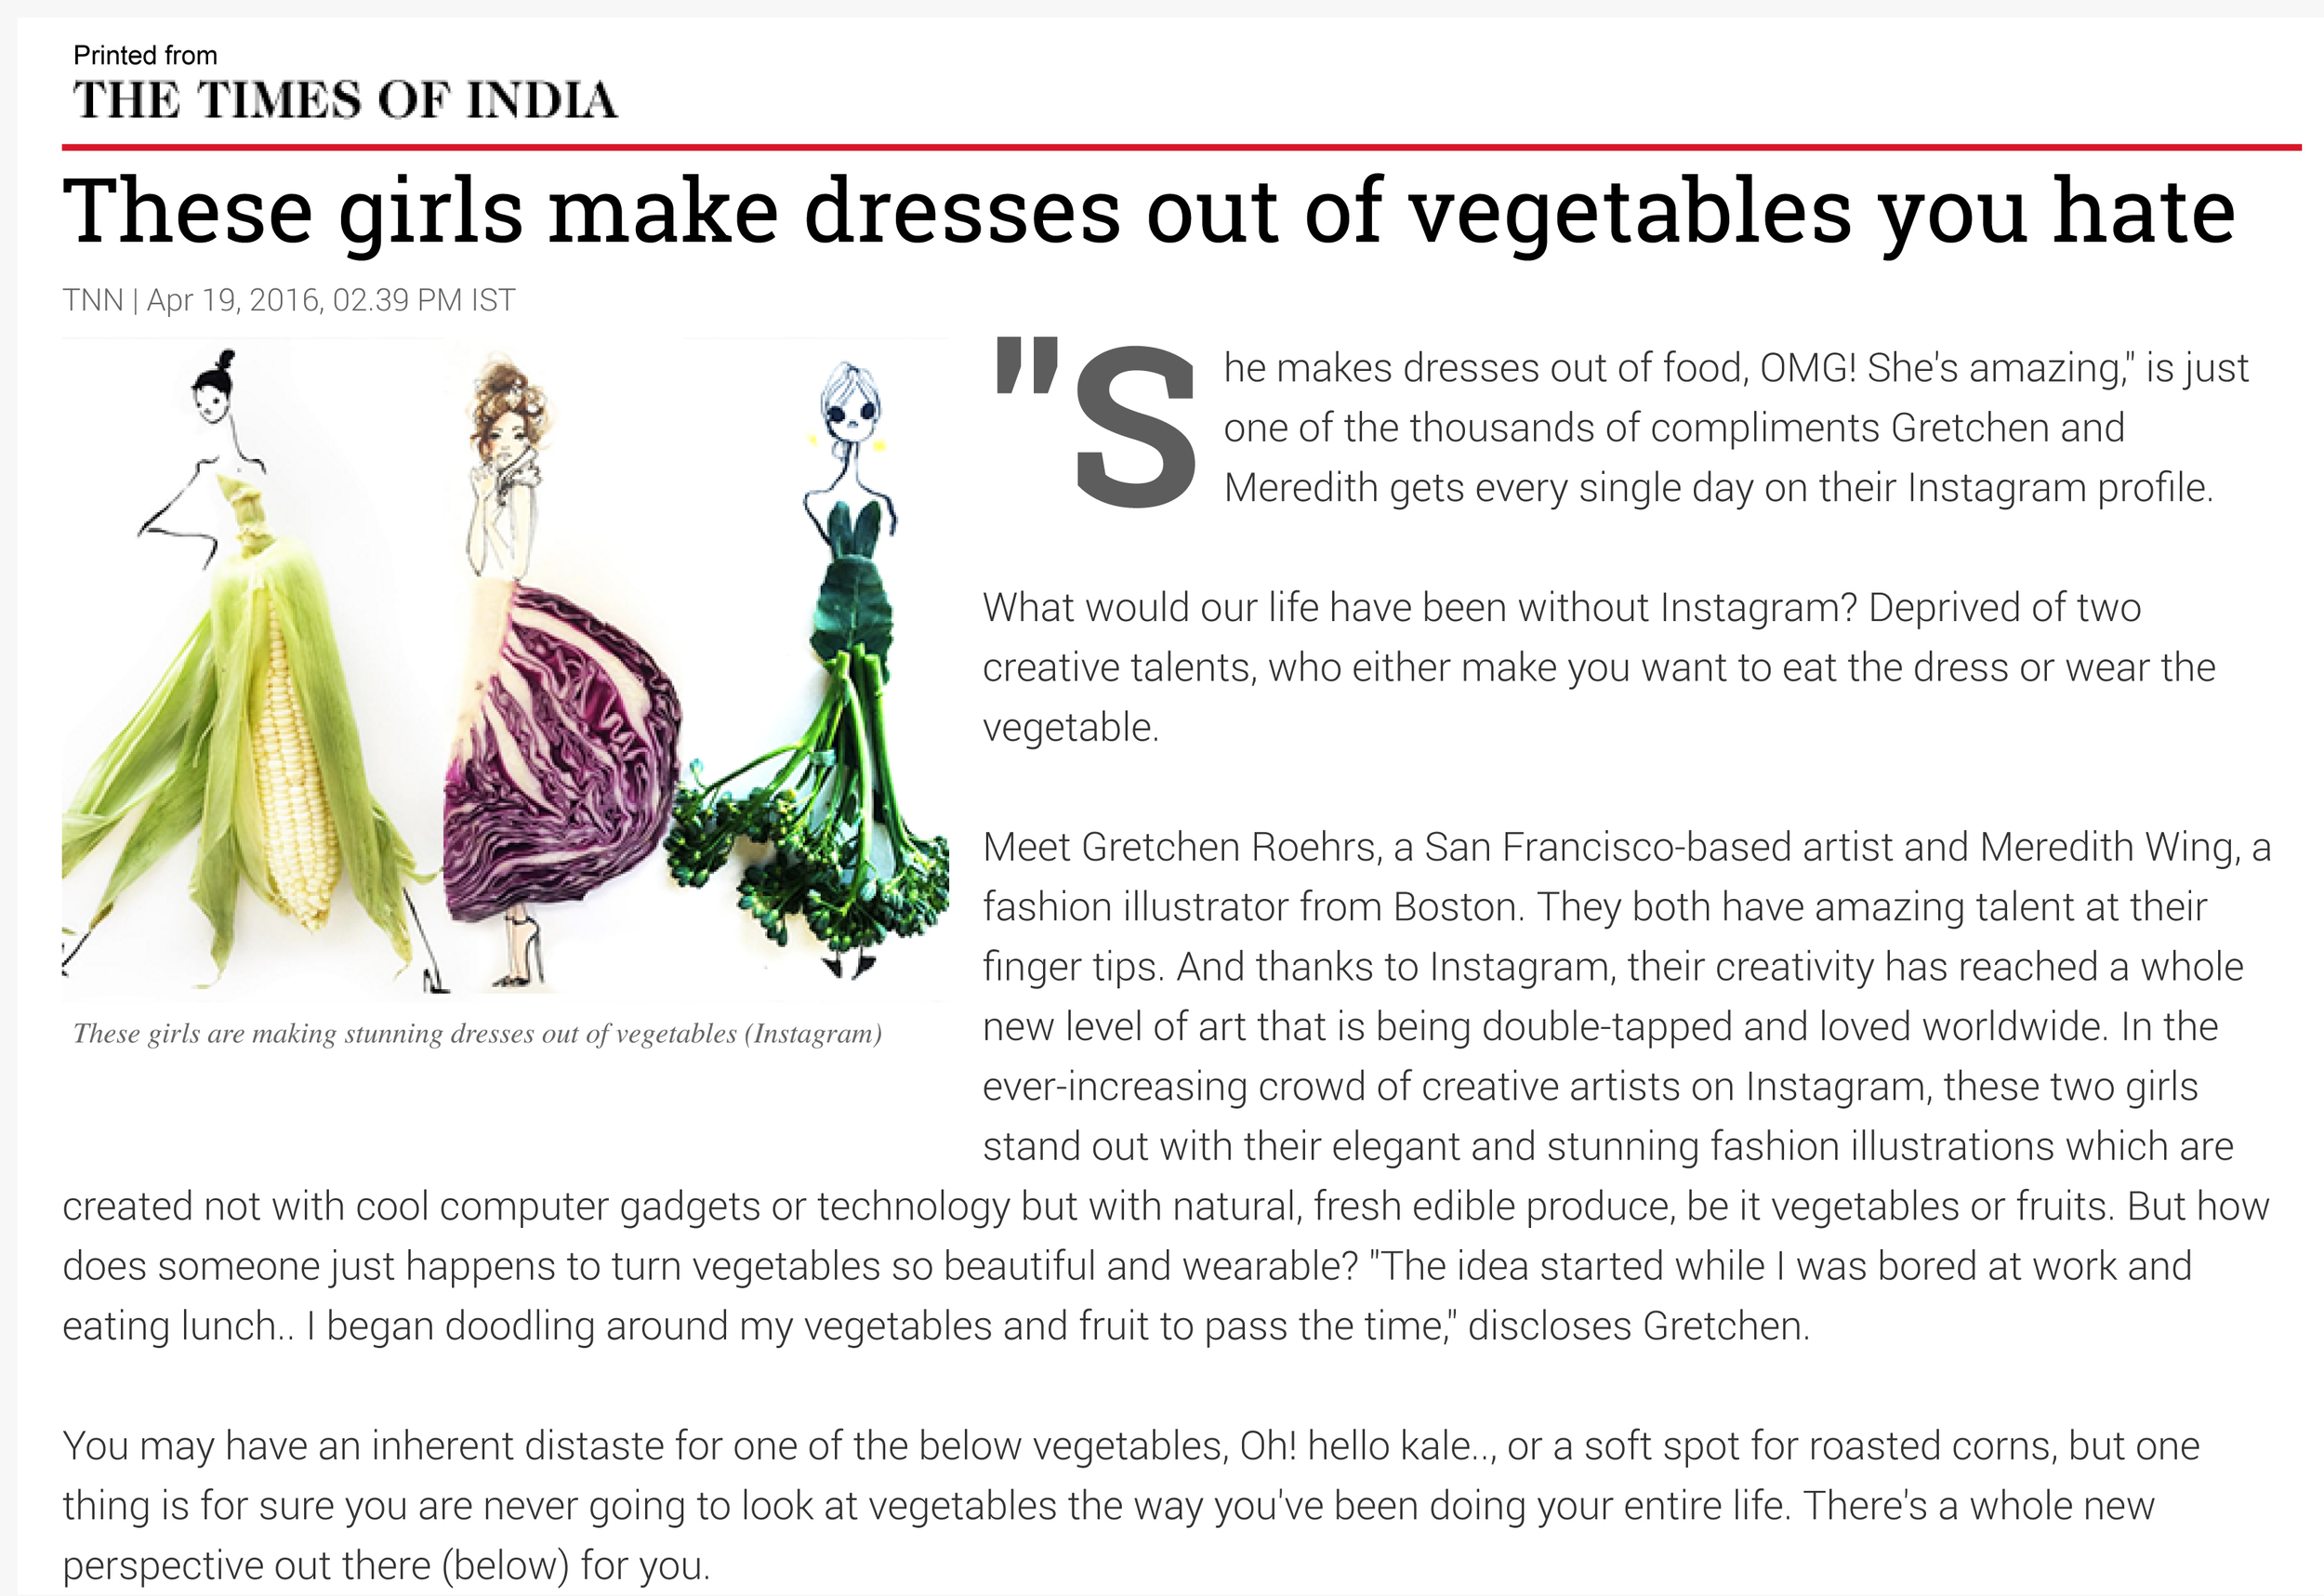 These girls make dresses out of vegetables you hate - Times of India-1.jpg